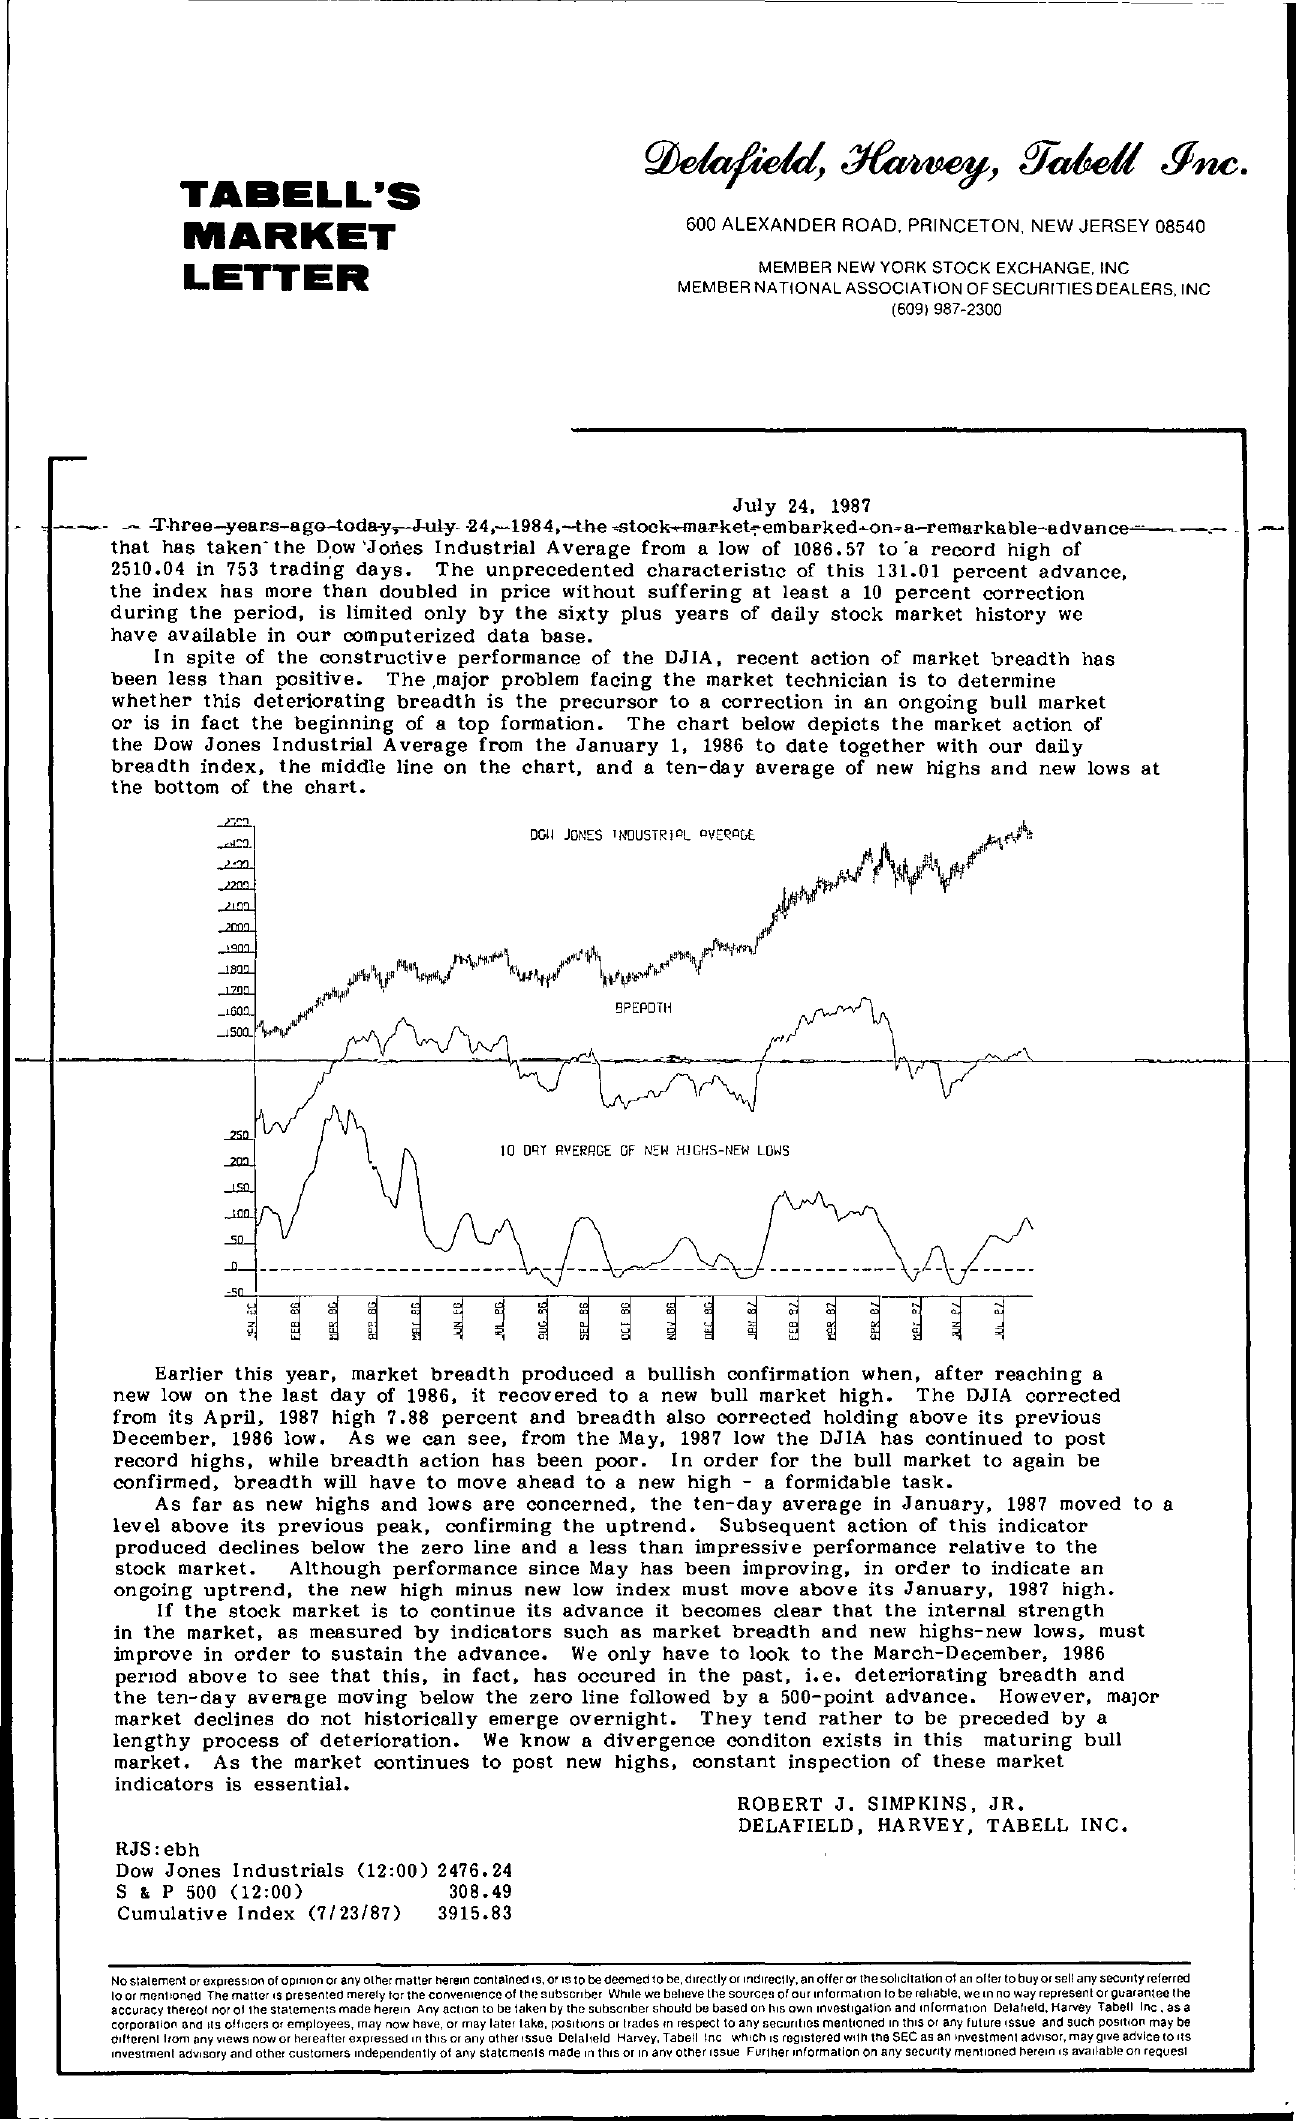 Tabell's Market Letter - July 24, 1987